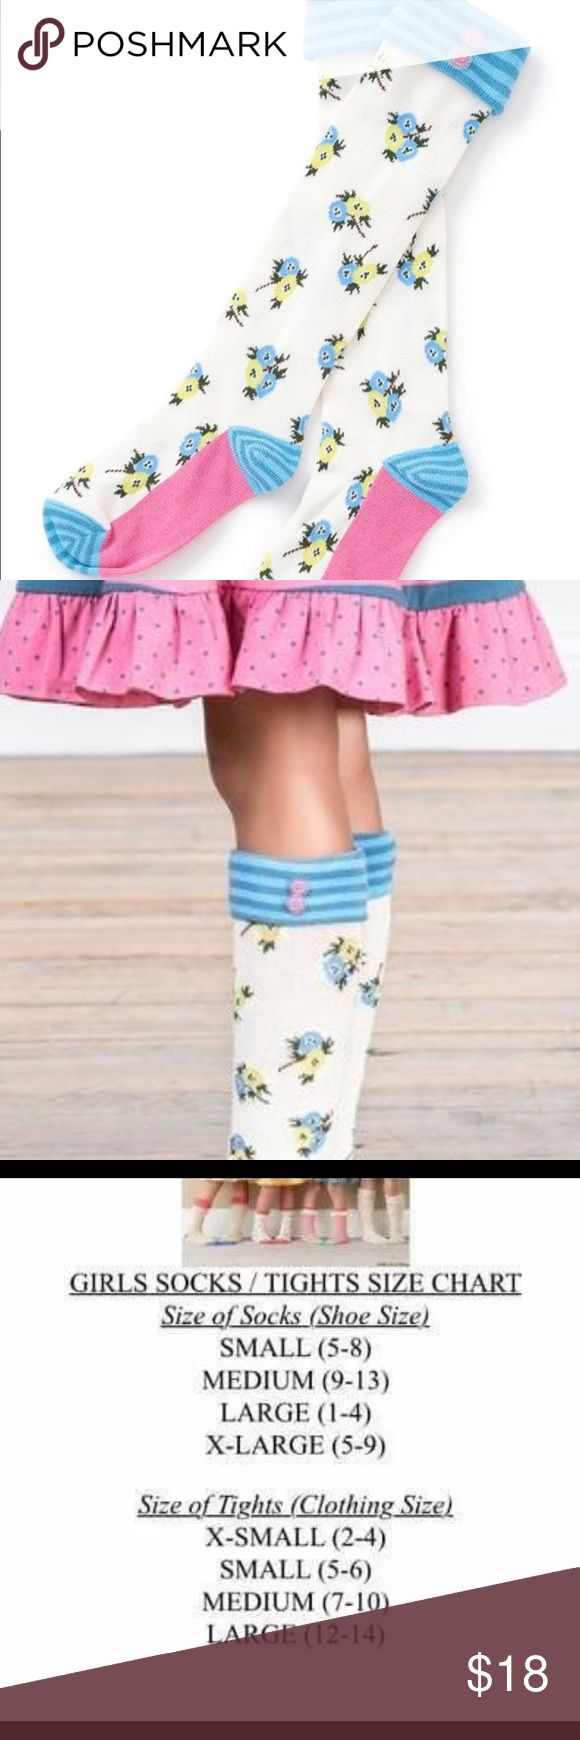 Matilda Jane Make Believe on the go socks Matilda Jane Make Believe on the go socks. Cute blue and white with floral print. Cute blue top with pink buttons. NWT Matilda Jane Accessories Socks & Tights